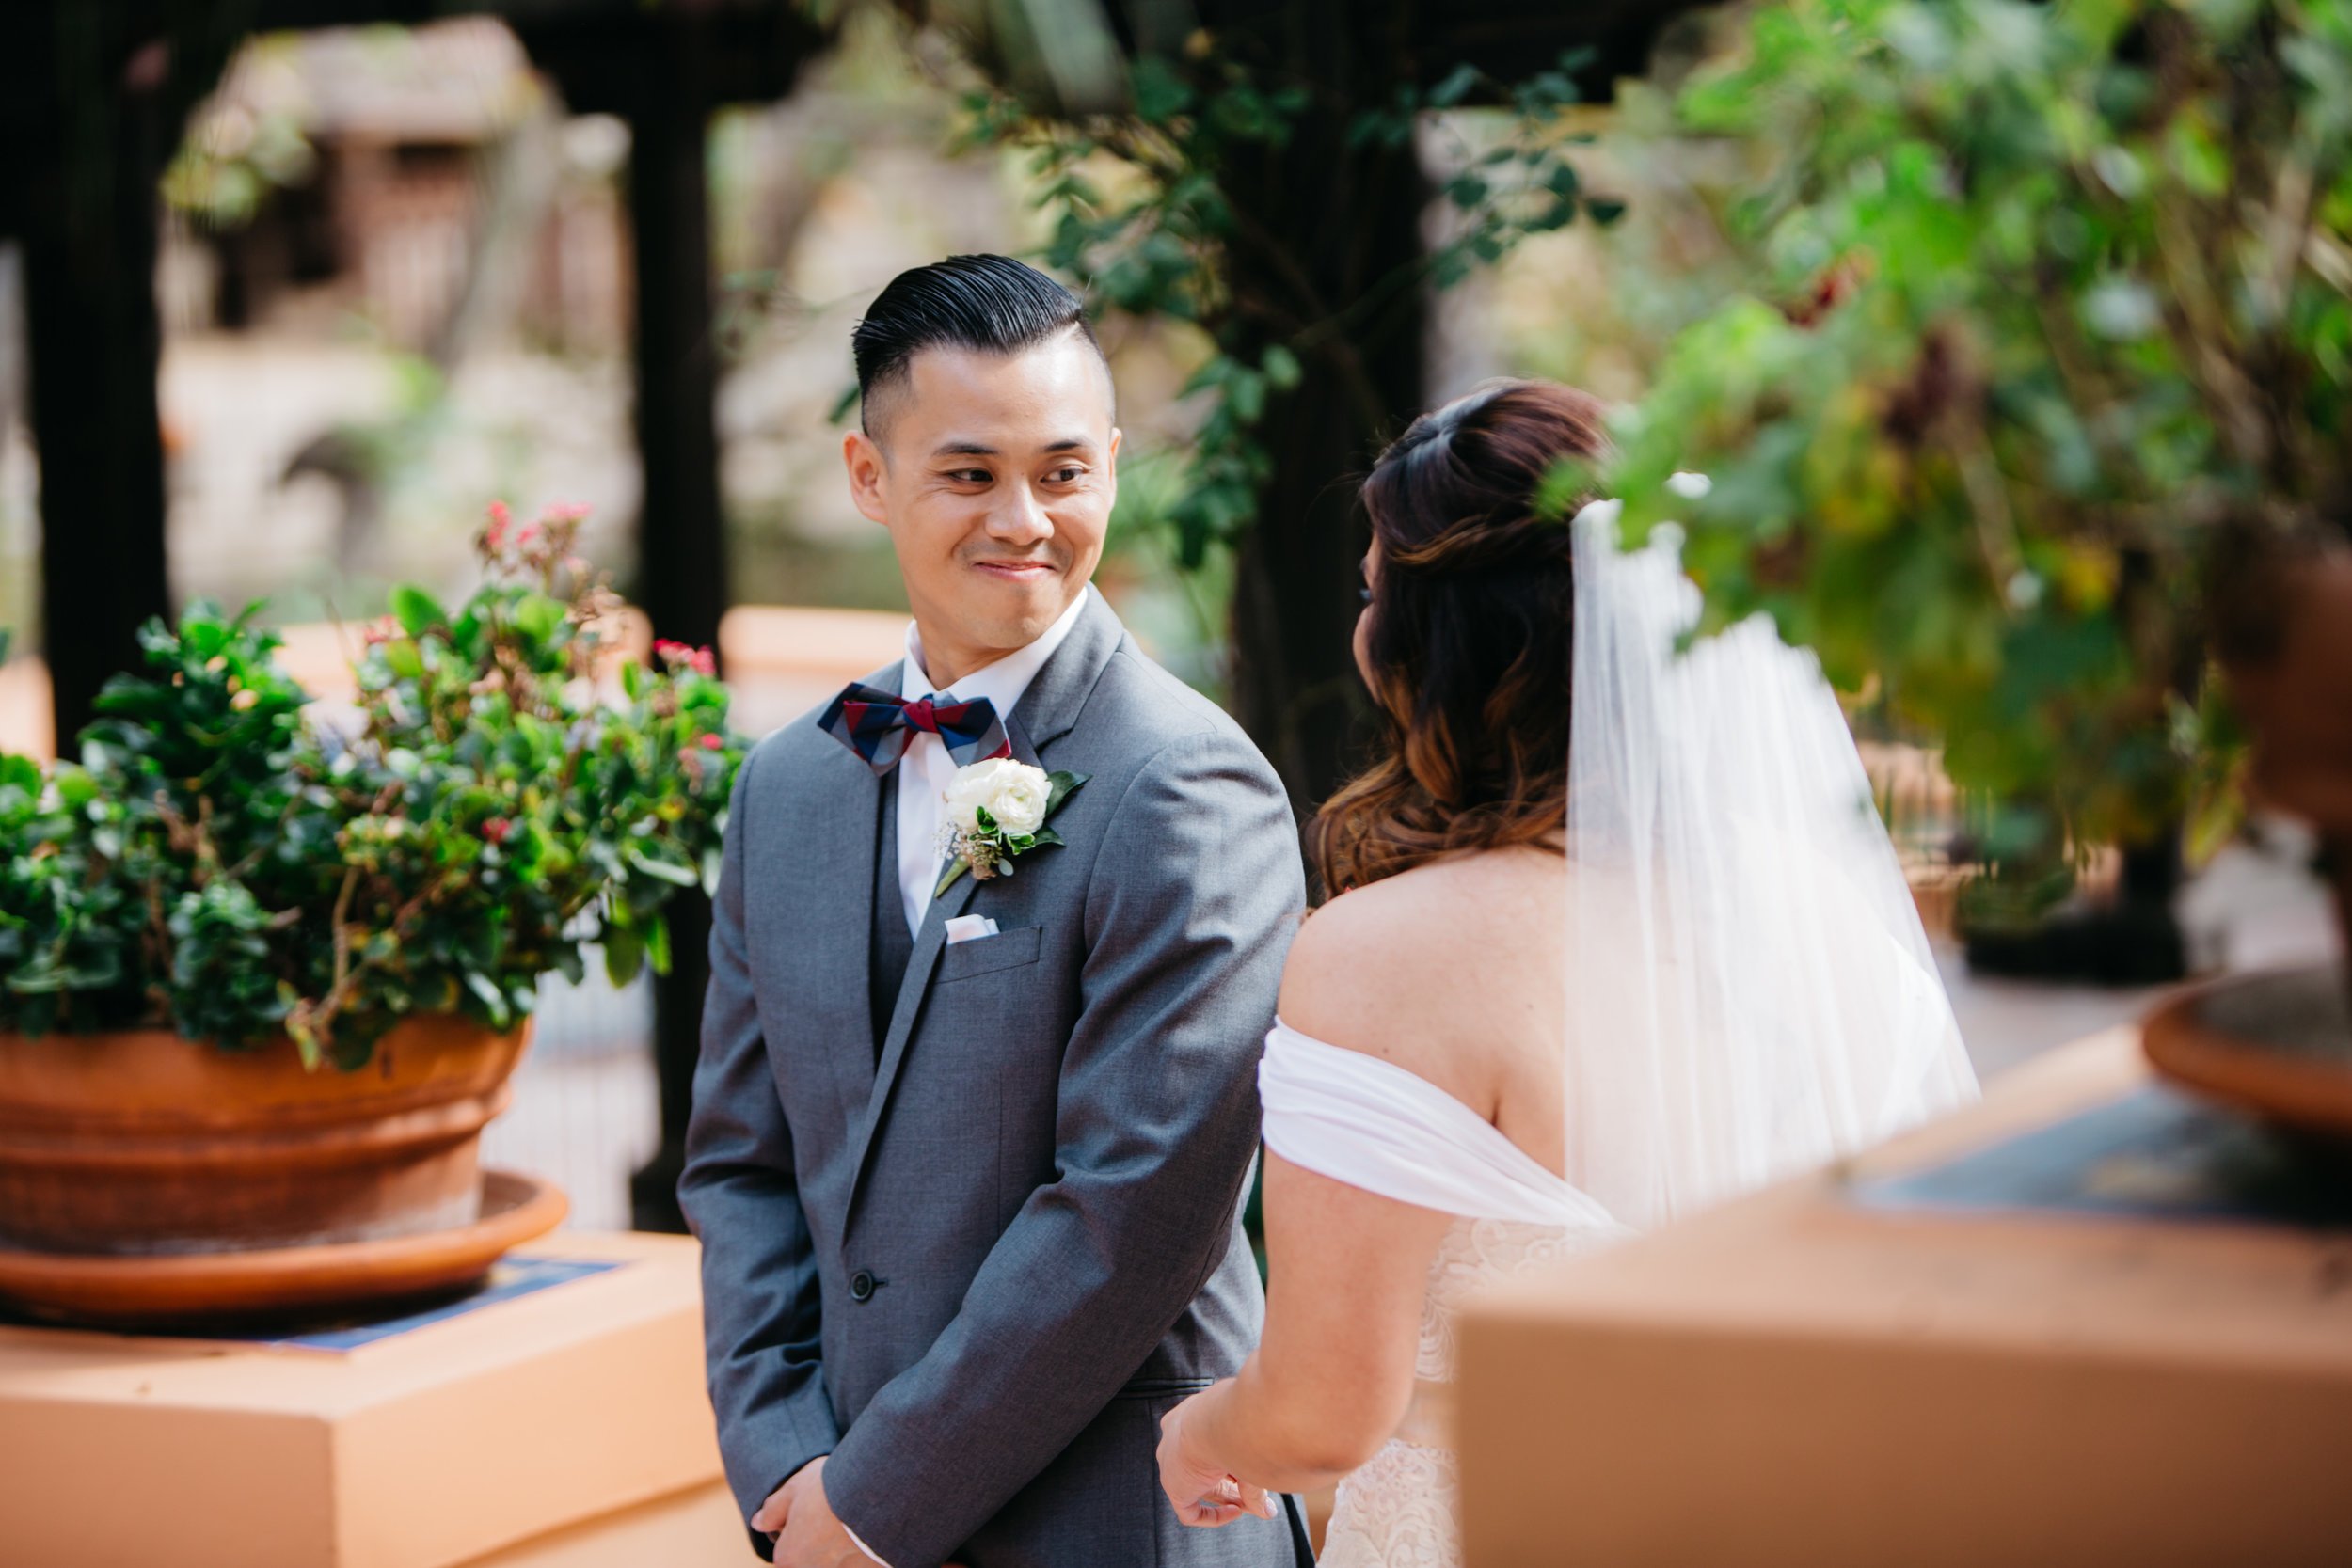 rancho-las-lomas-wedding-planner-best-wedding-planner-in-southern-california81.jpg